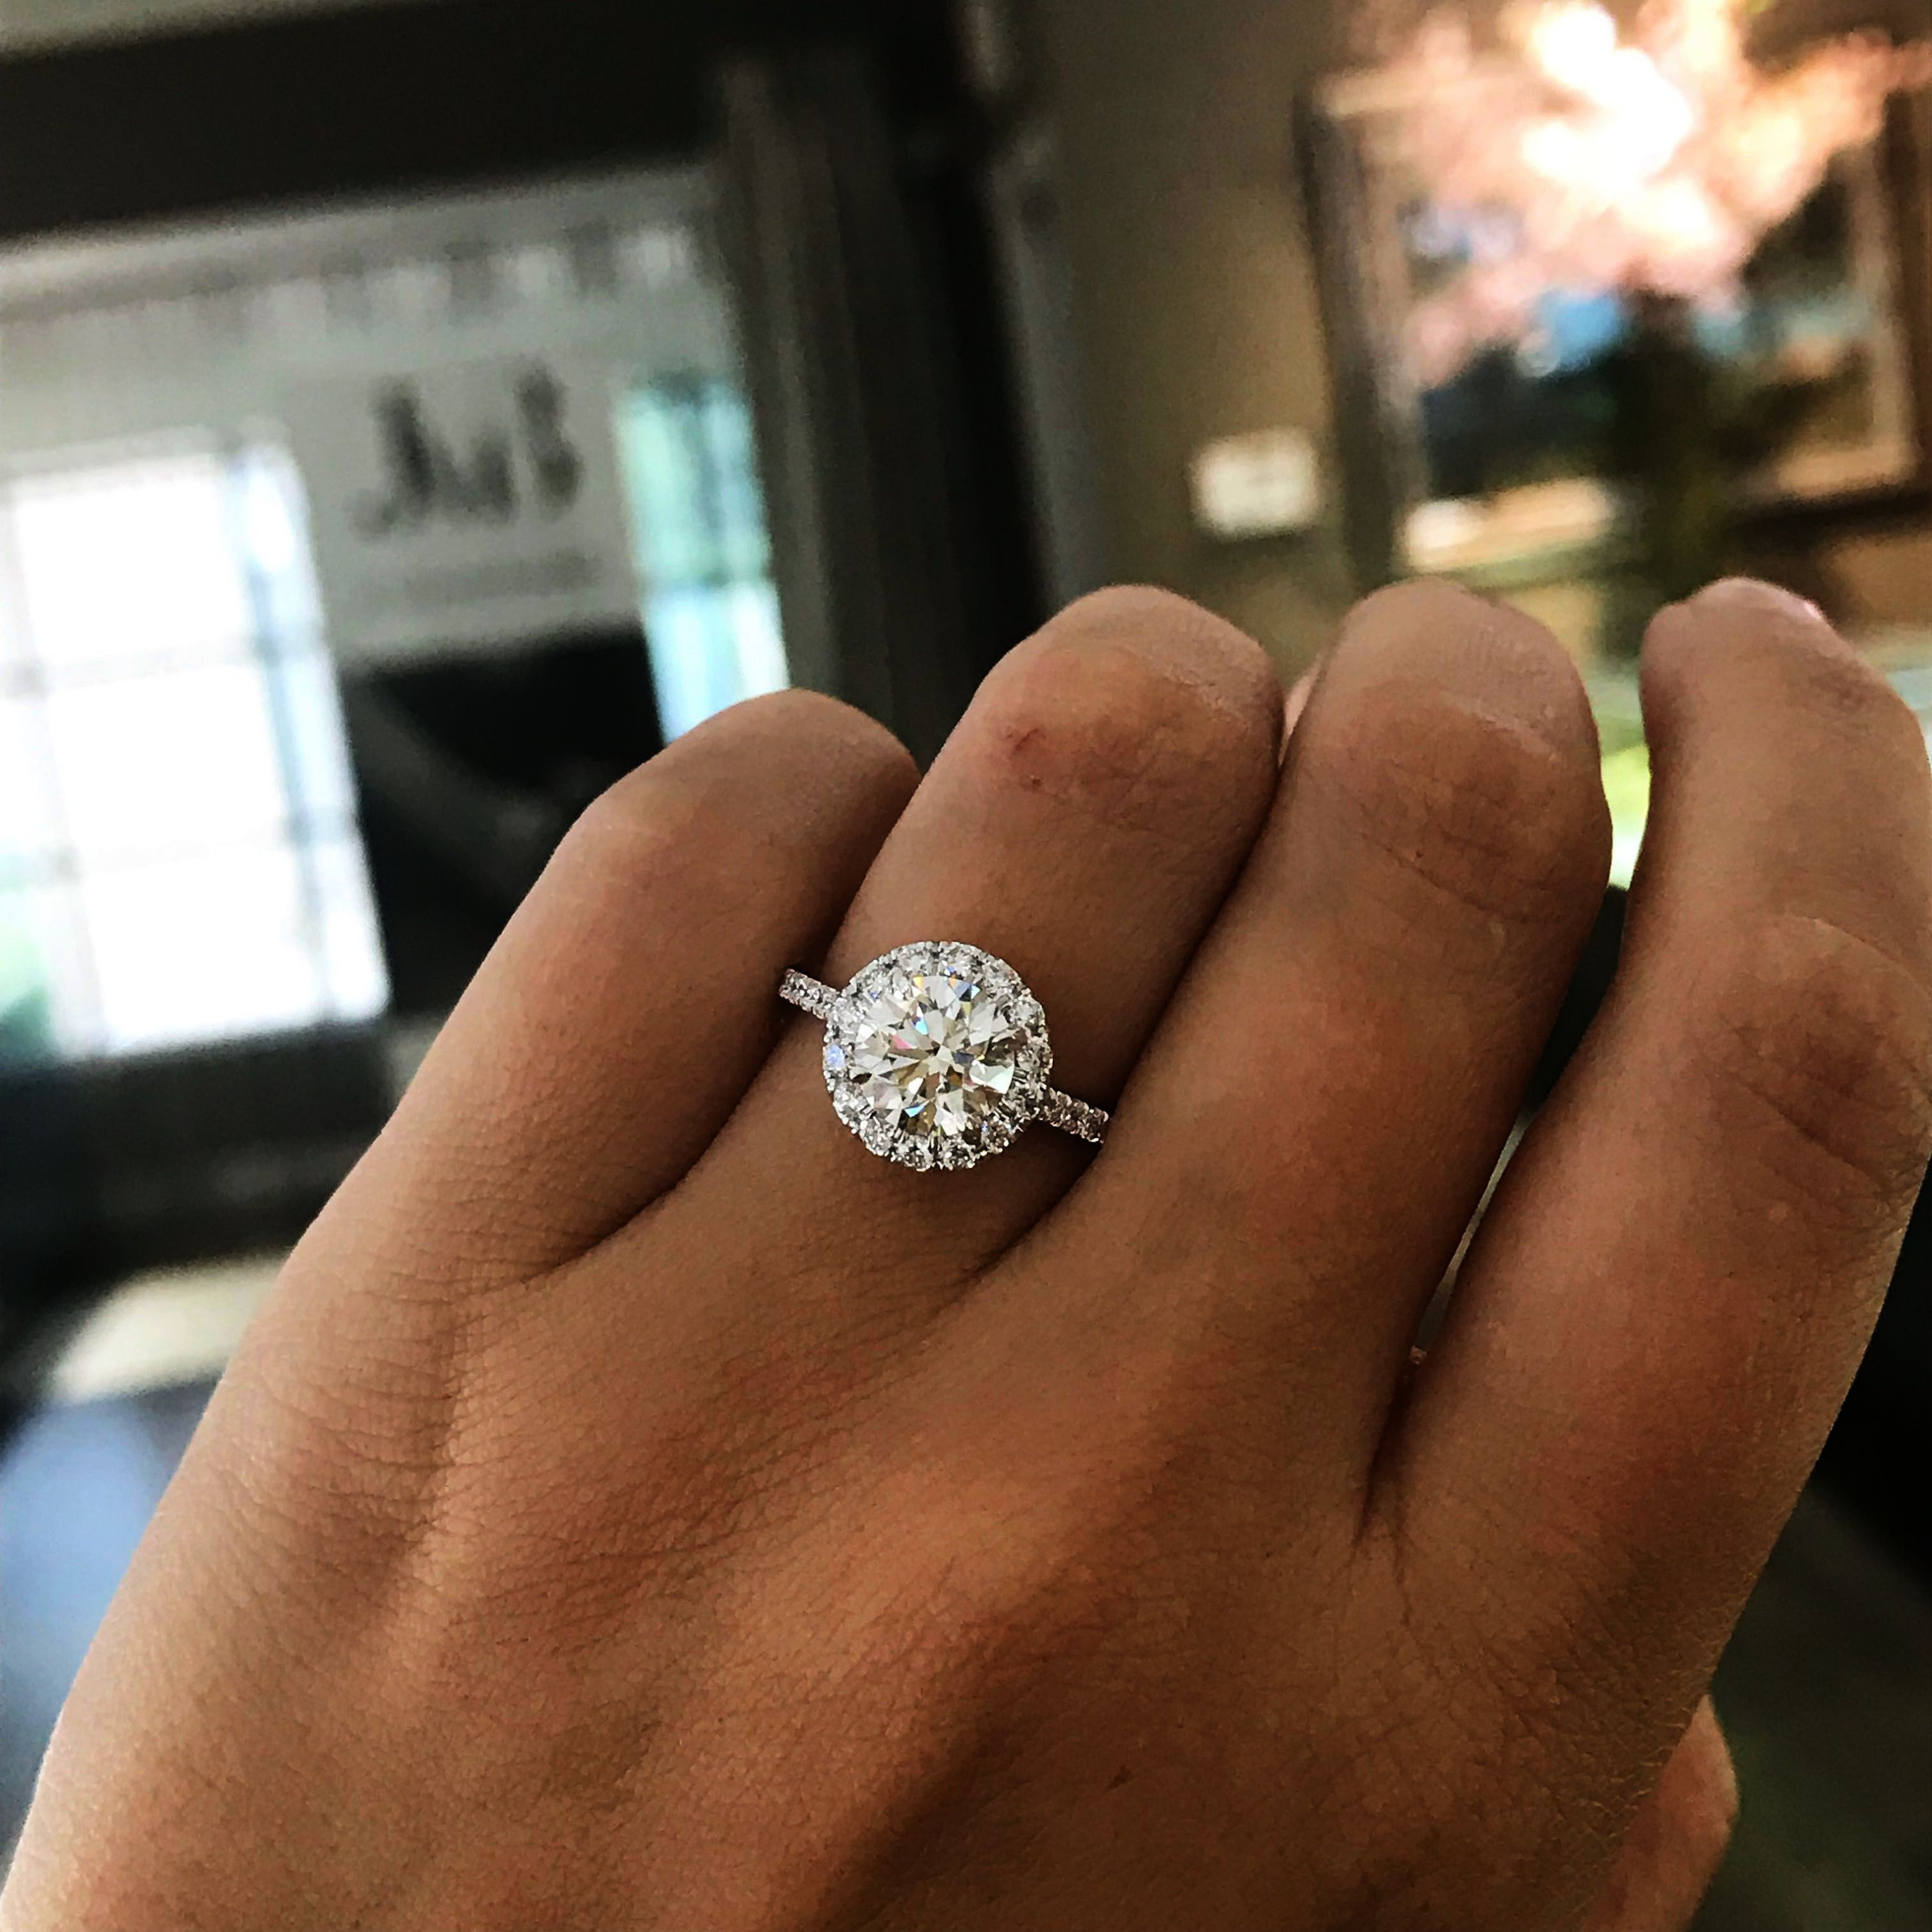 Jewelry Stores Near Me Now Once Round Diamond Engagement